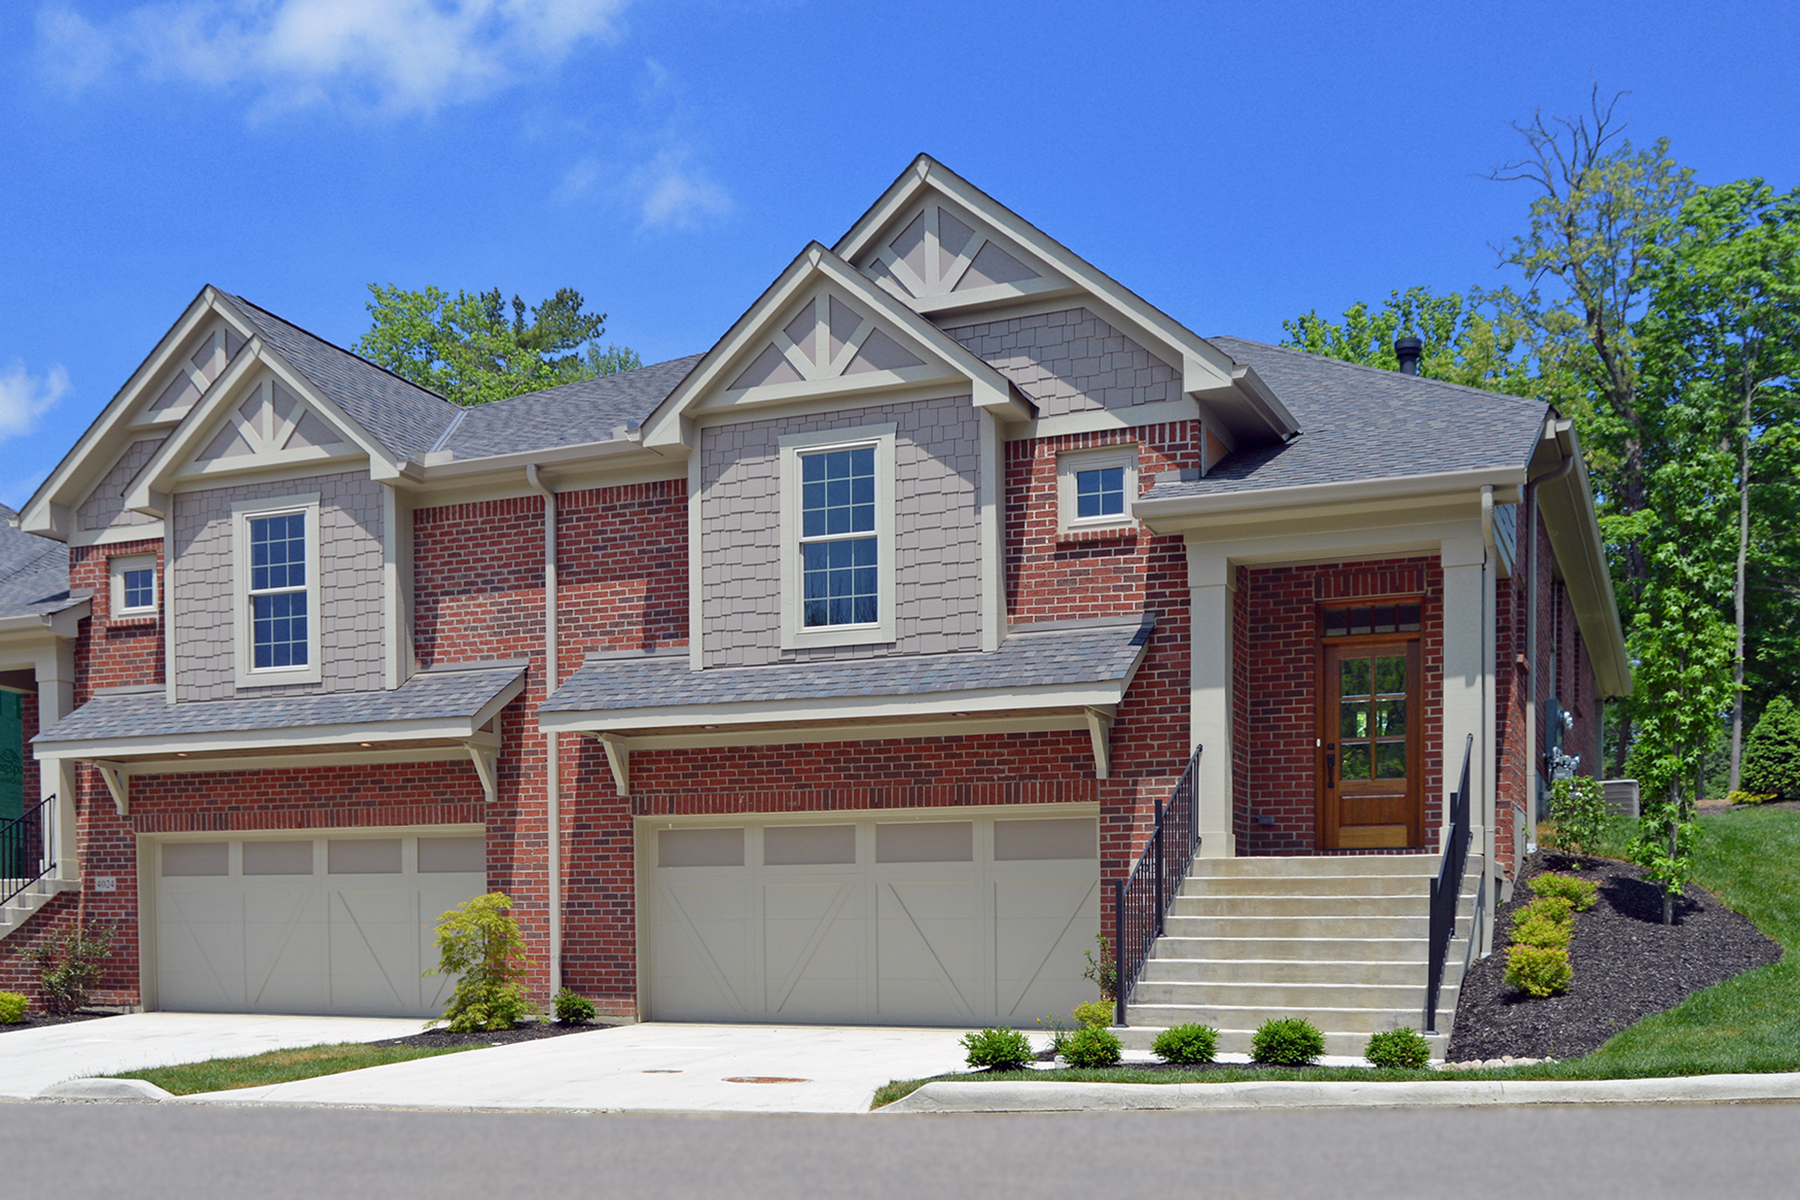 townhouses のために 売買 アット Immaculate 2600 sf / 2 years young Townhome in Blue Ash 4026 Creekside Pointe, Blue Ash, オハイオ 45236 アメリカ